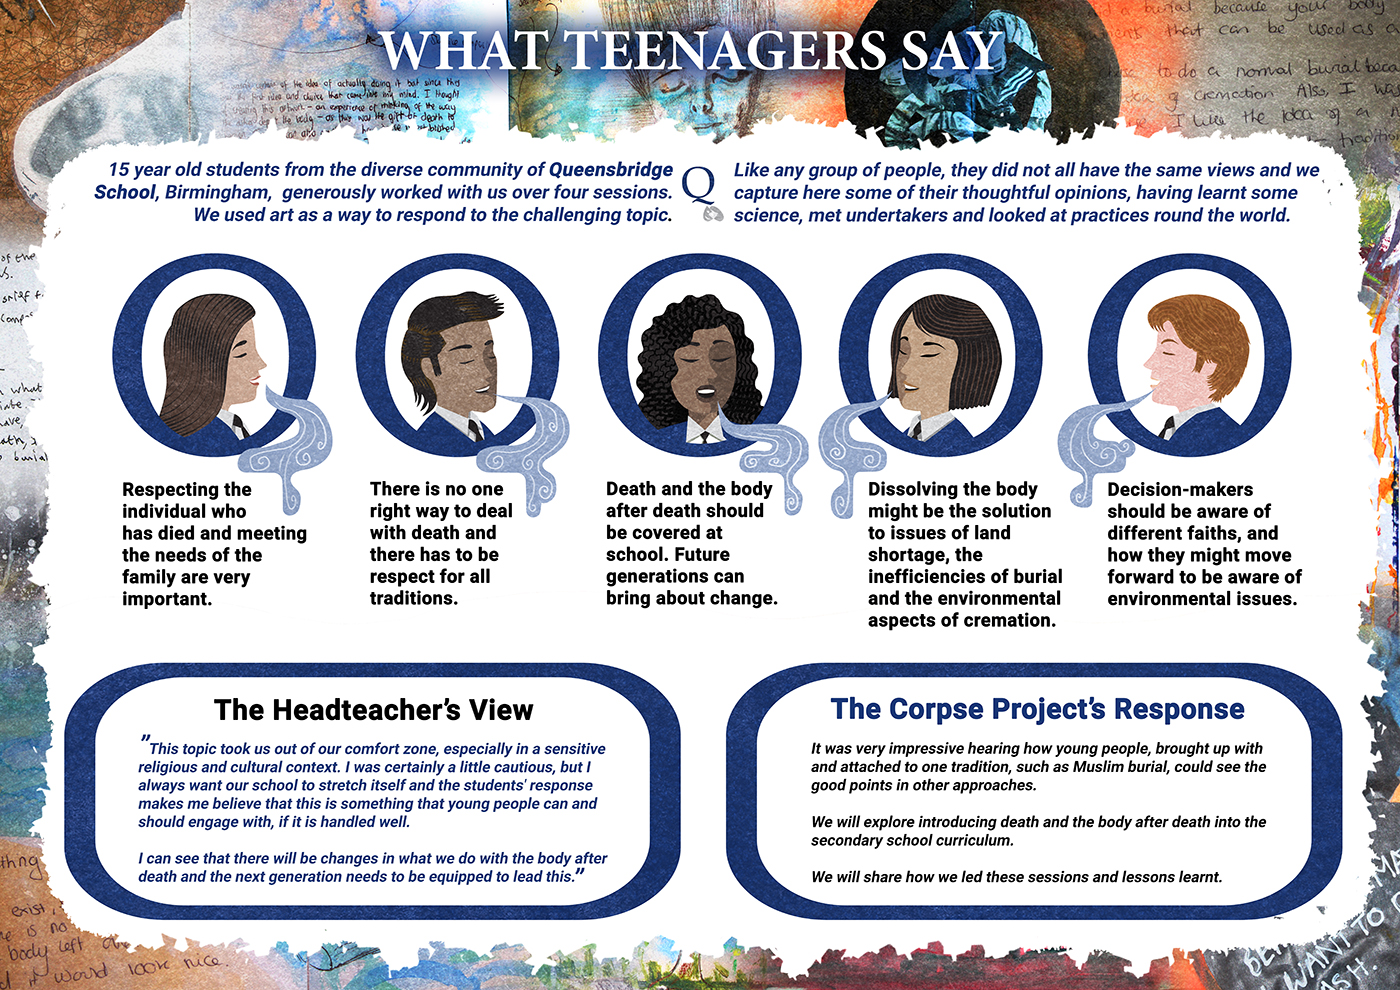 Illustration showing young people with comments in speech bubbles (copied below)